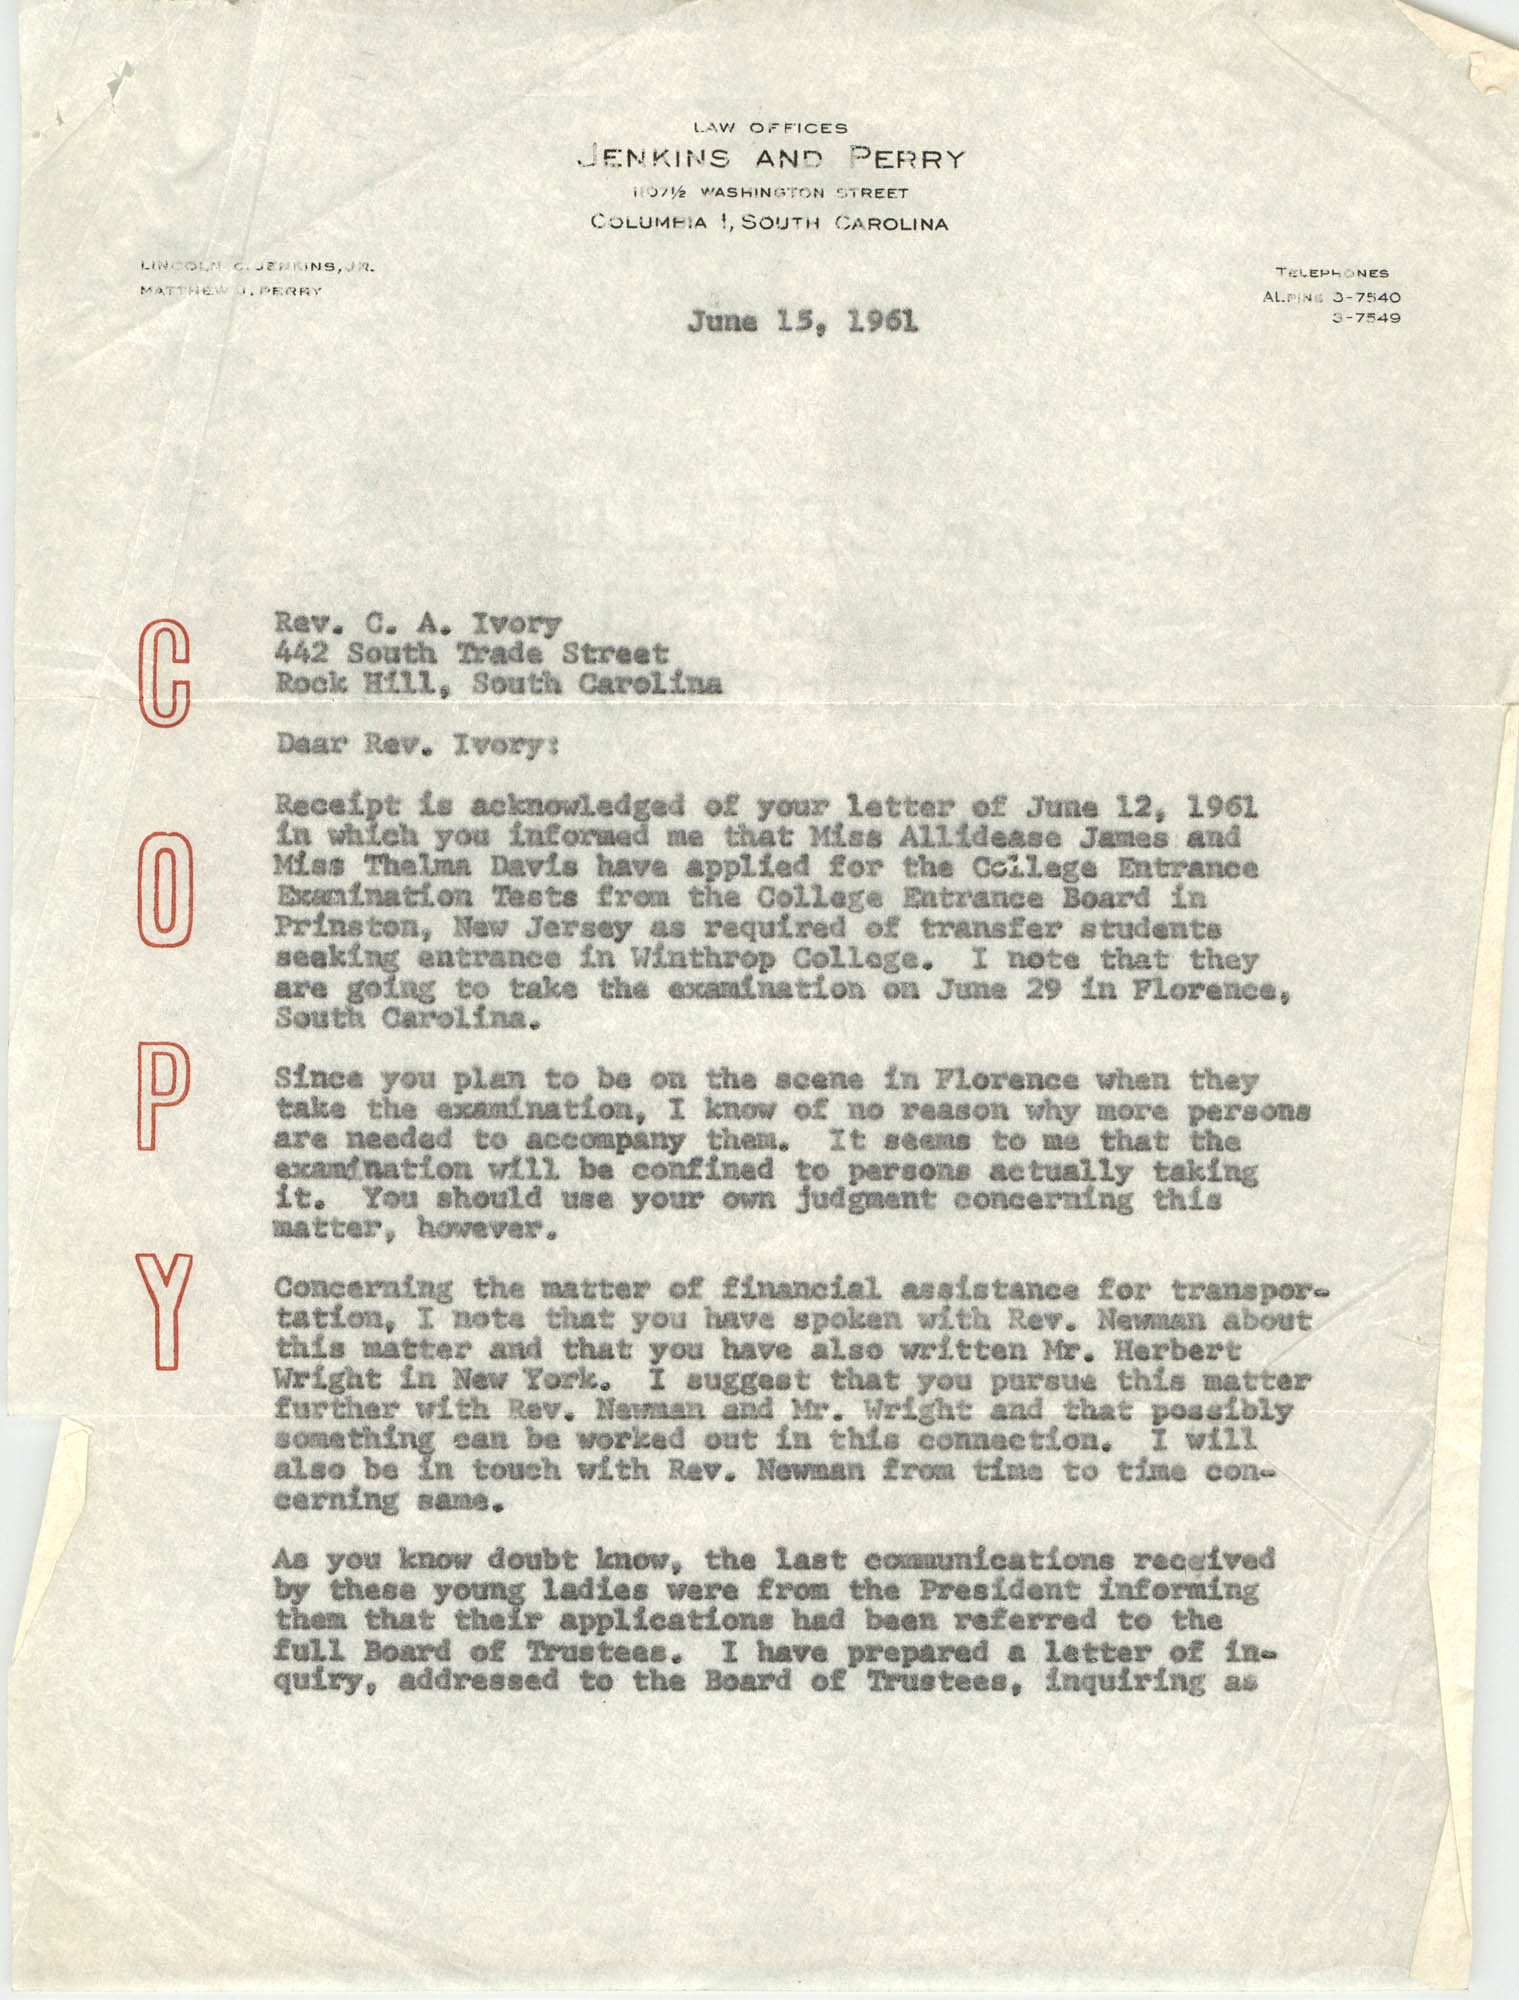 Letter from Matthew J. Perry to C. A. Ivory, June 15, 1961